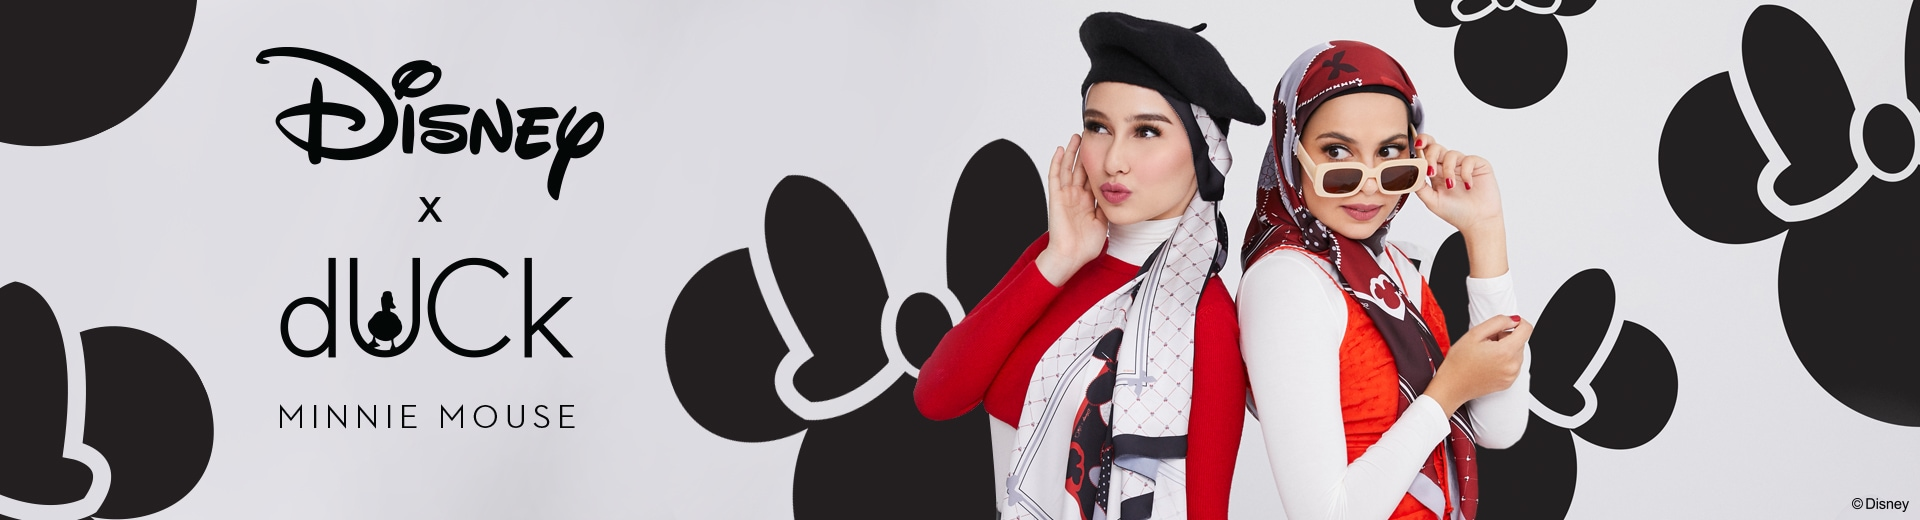 Shop Page Hero Banner - DUCK X Minnie Mouse